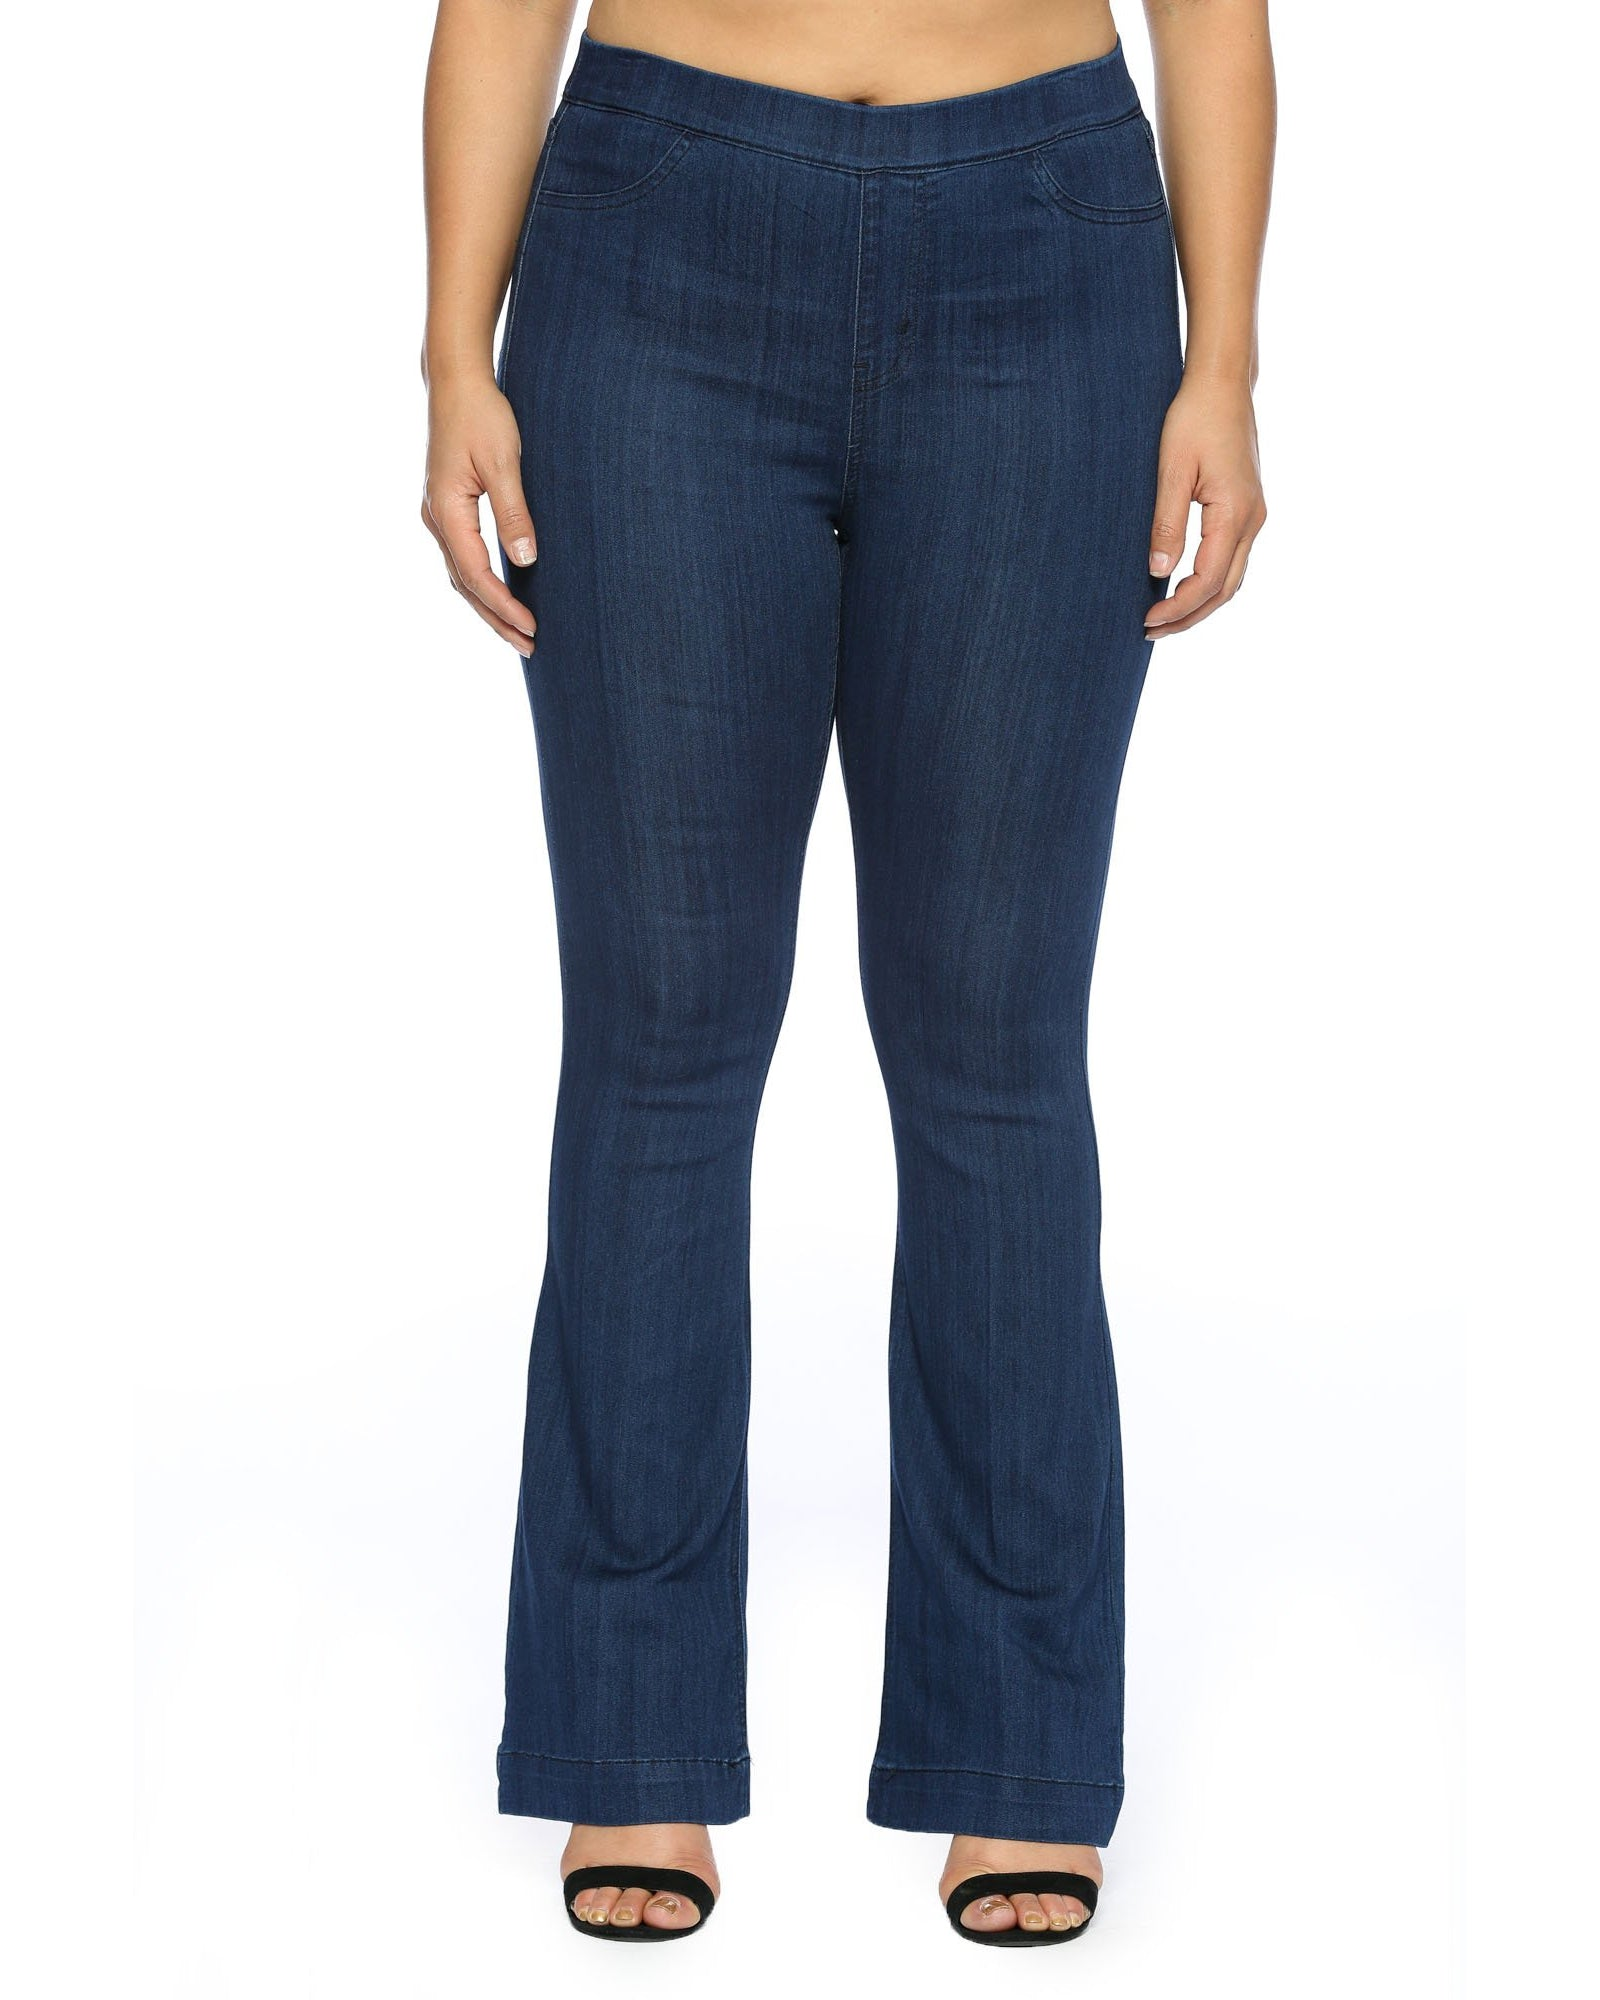 New Arrival!!! Cello Mid Rise Pull On Deluxe Comfort Flare Jeans - Dark Blue Denim - Plus - Essentially Elegant